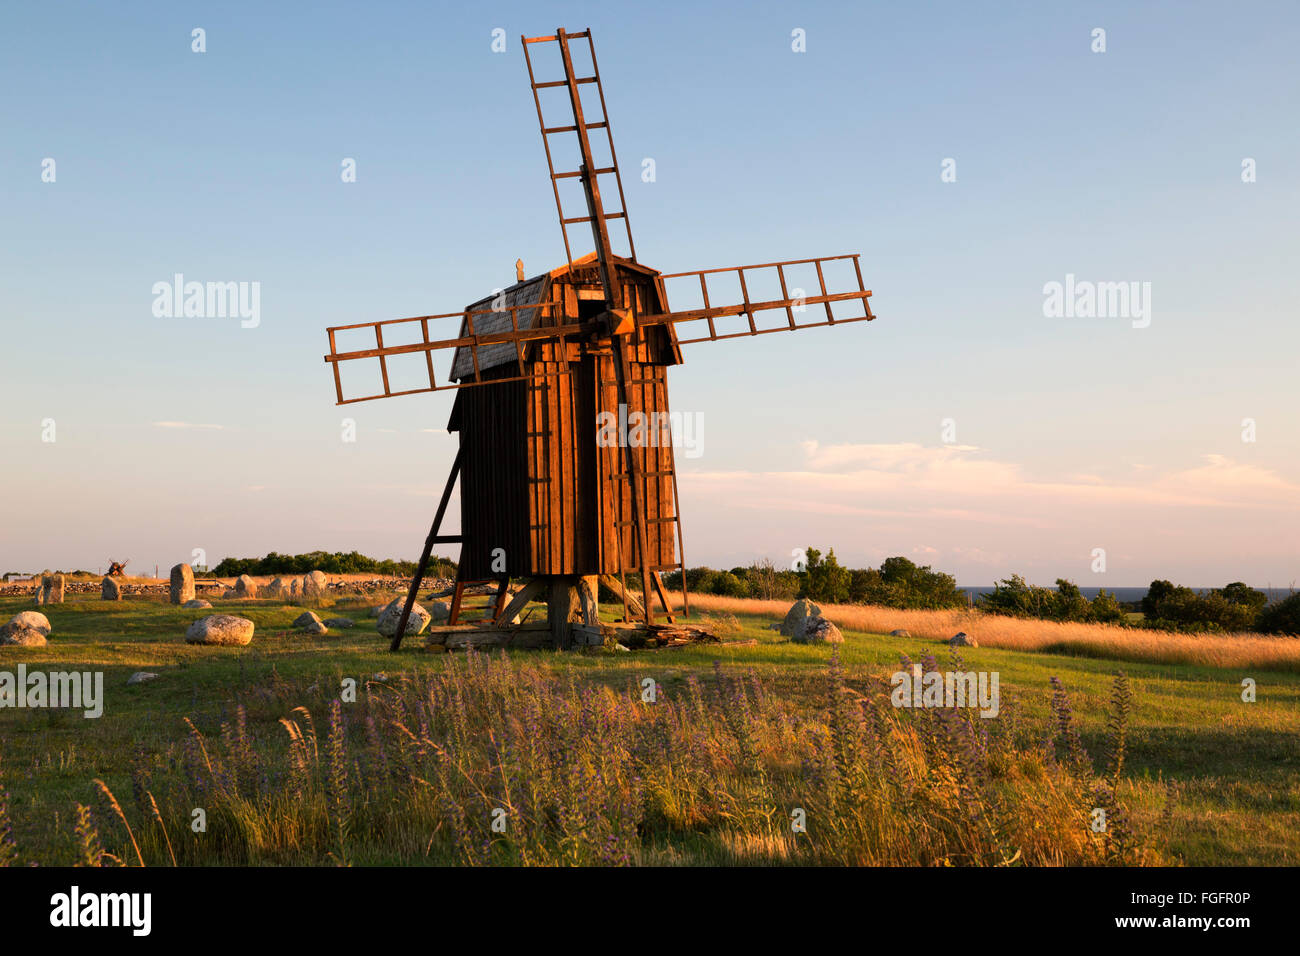 Traditional wooden windmill, Gettlinge, Oland, Southeast Sweden, Sweden, Scandinavia, Europe - Stock Image